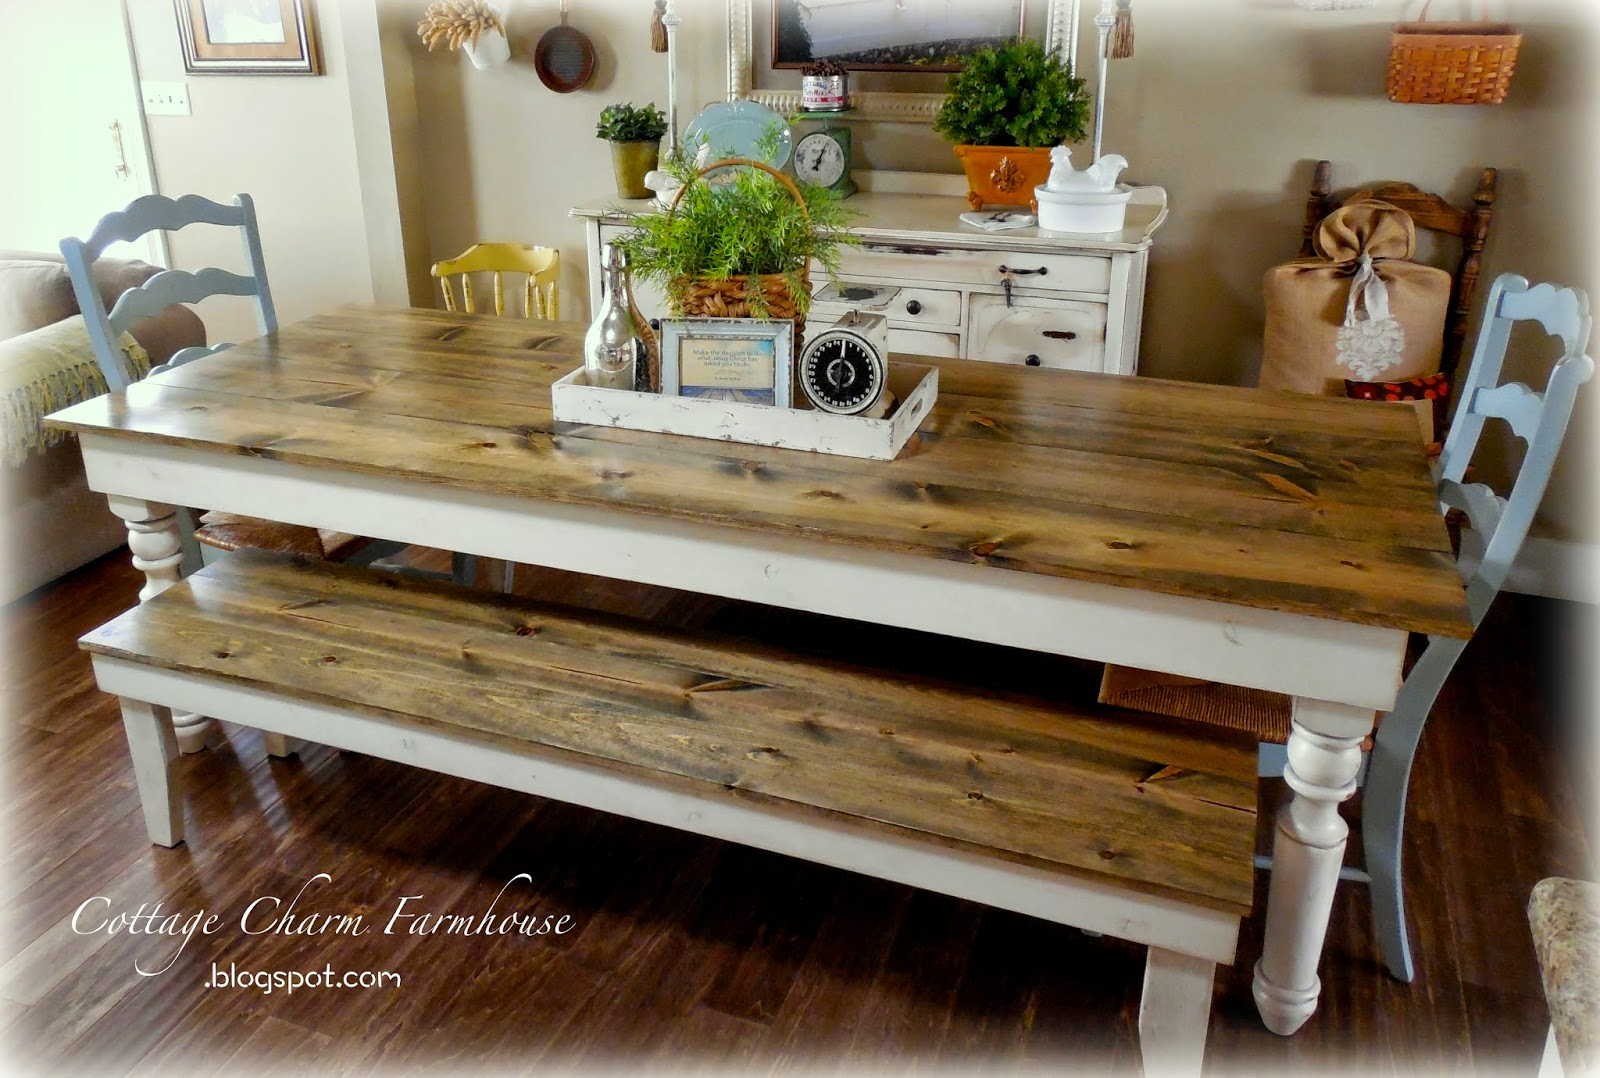 Cottage charm creations old english farmhouse tables for Cottage charm farmhouse